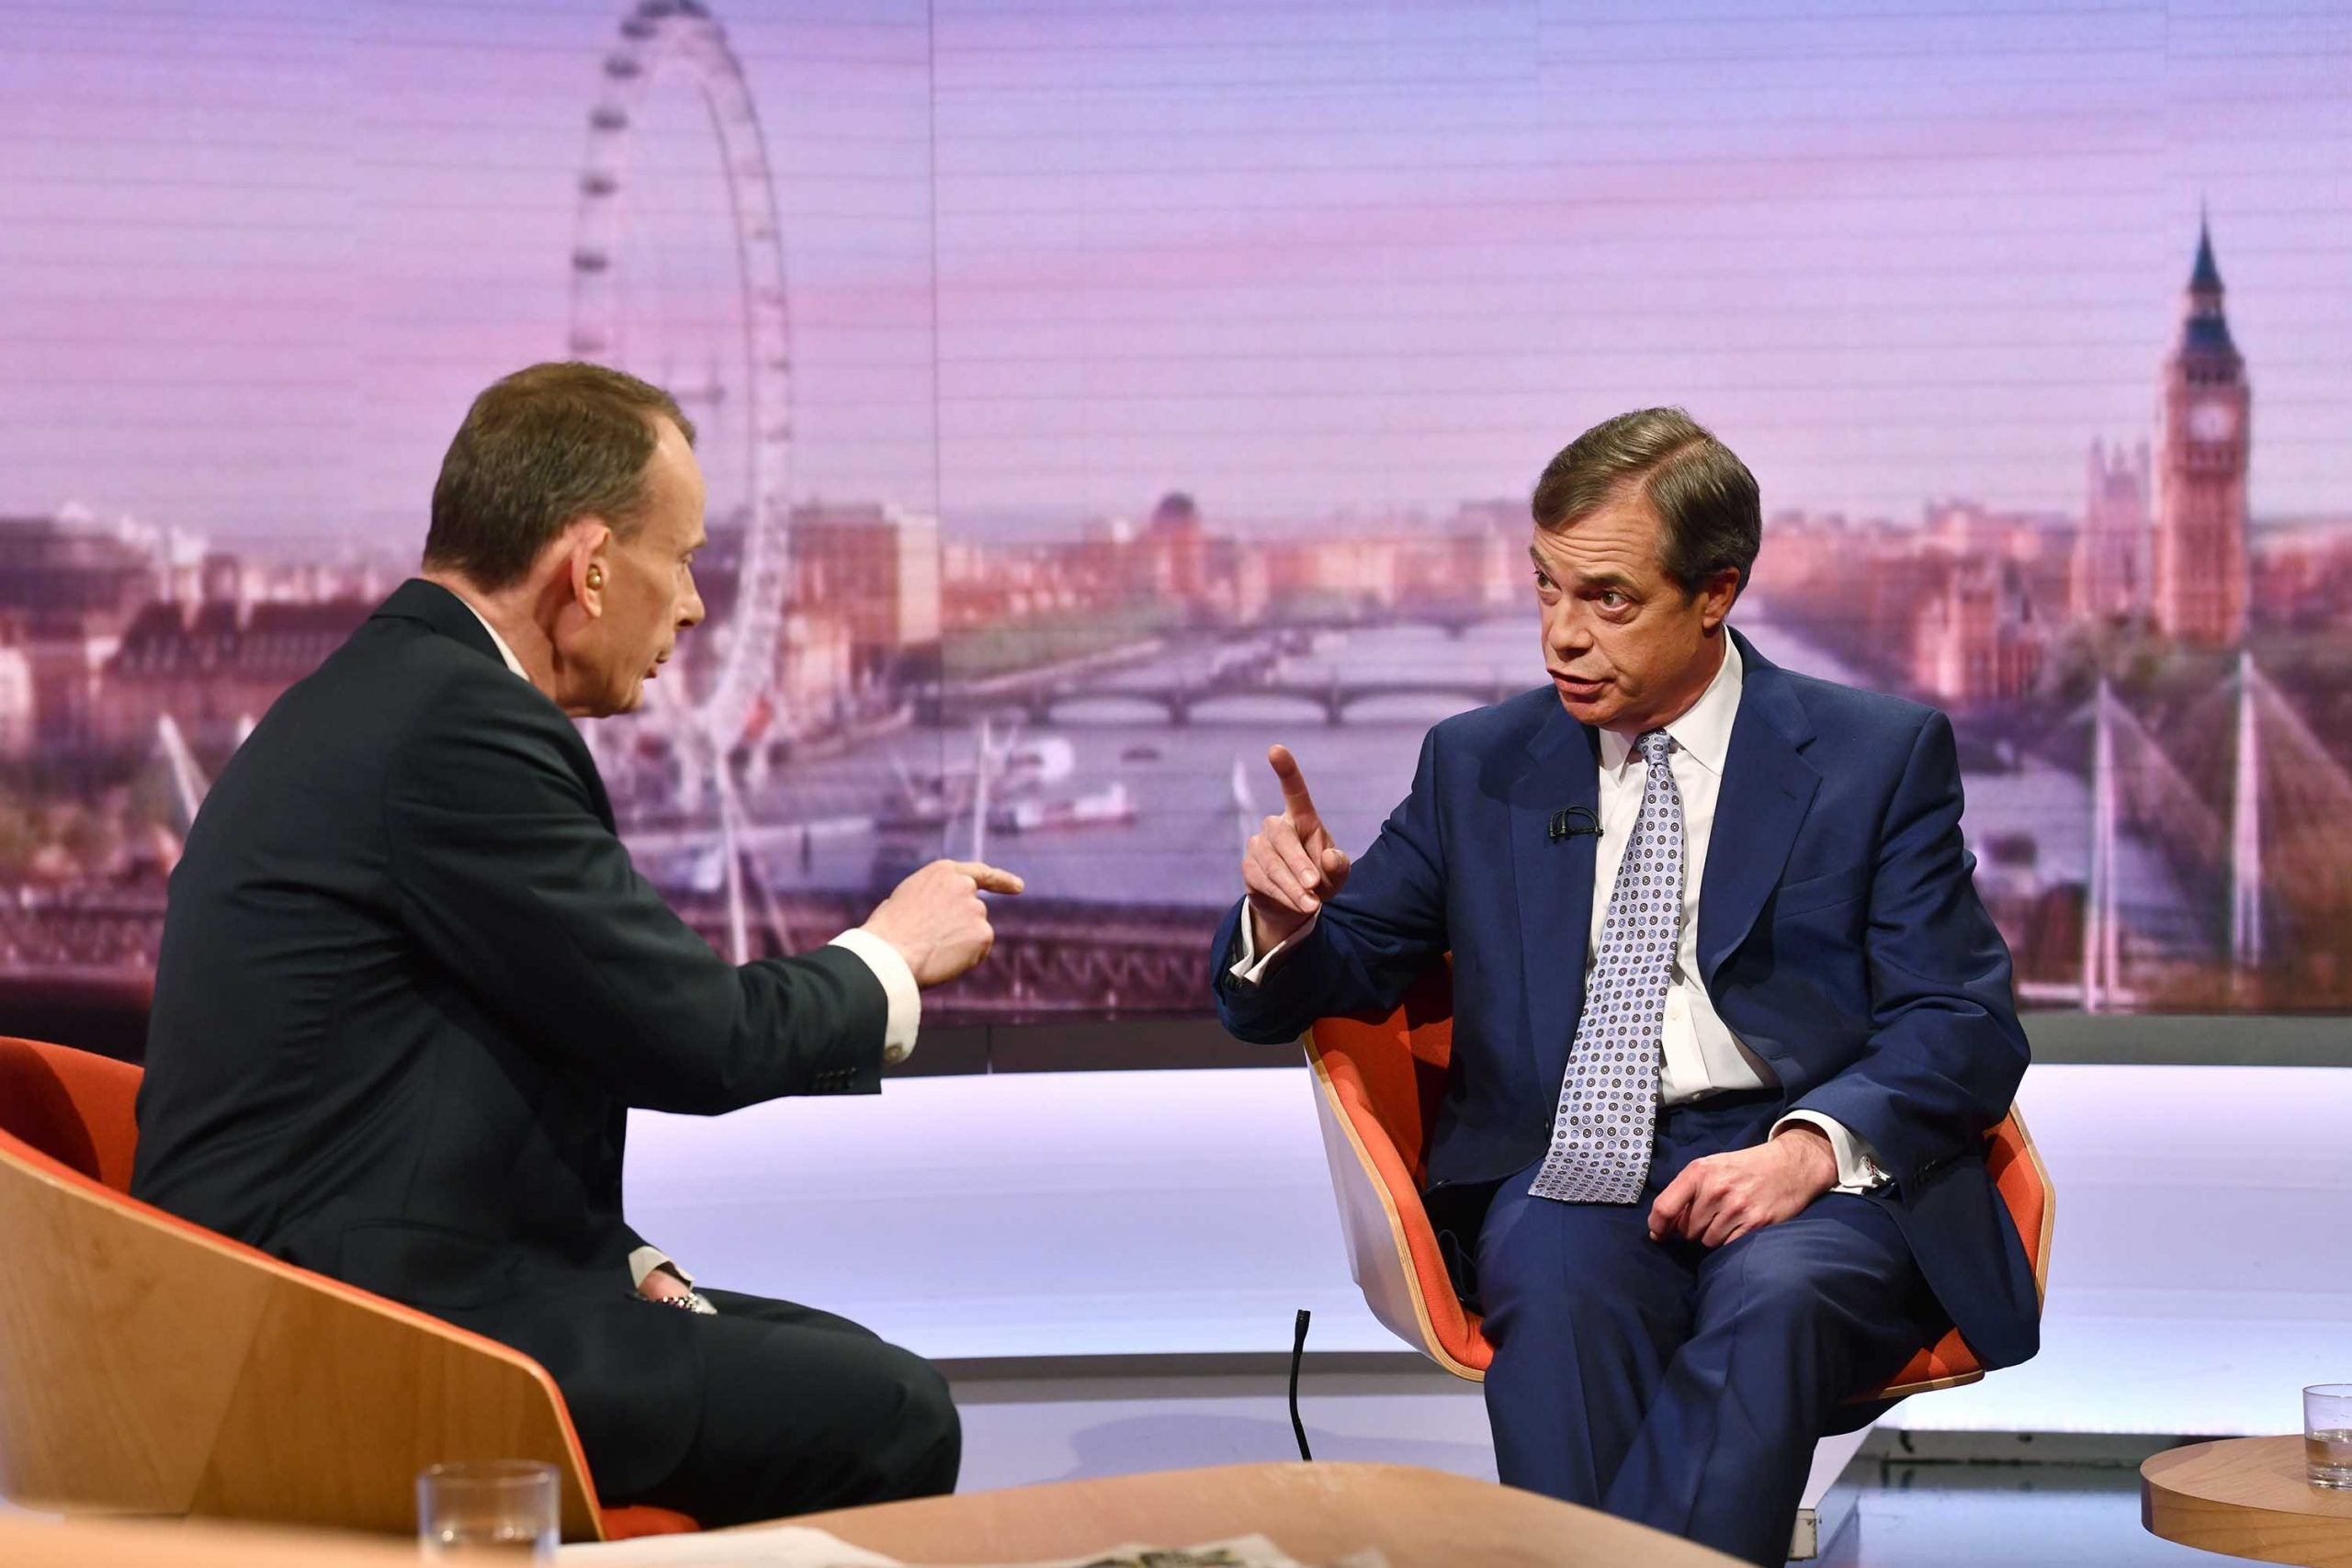 So Nigel Farage hates the BBC's tough questions? What a snowflake